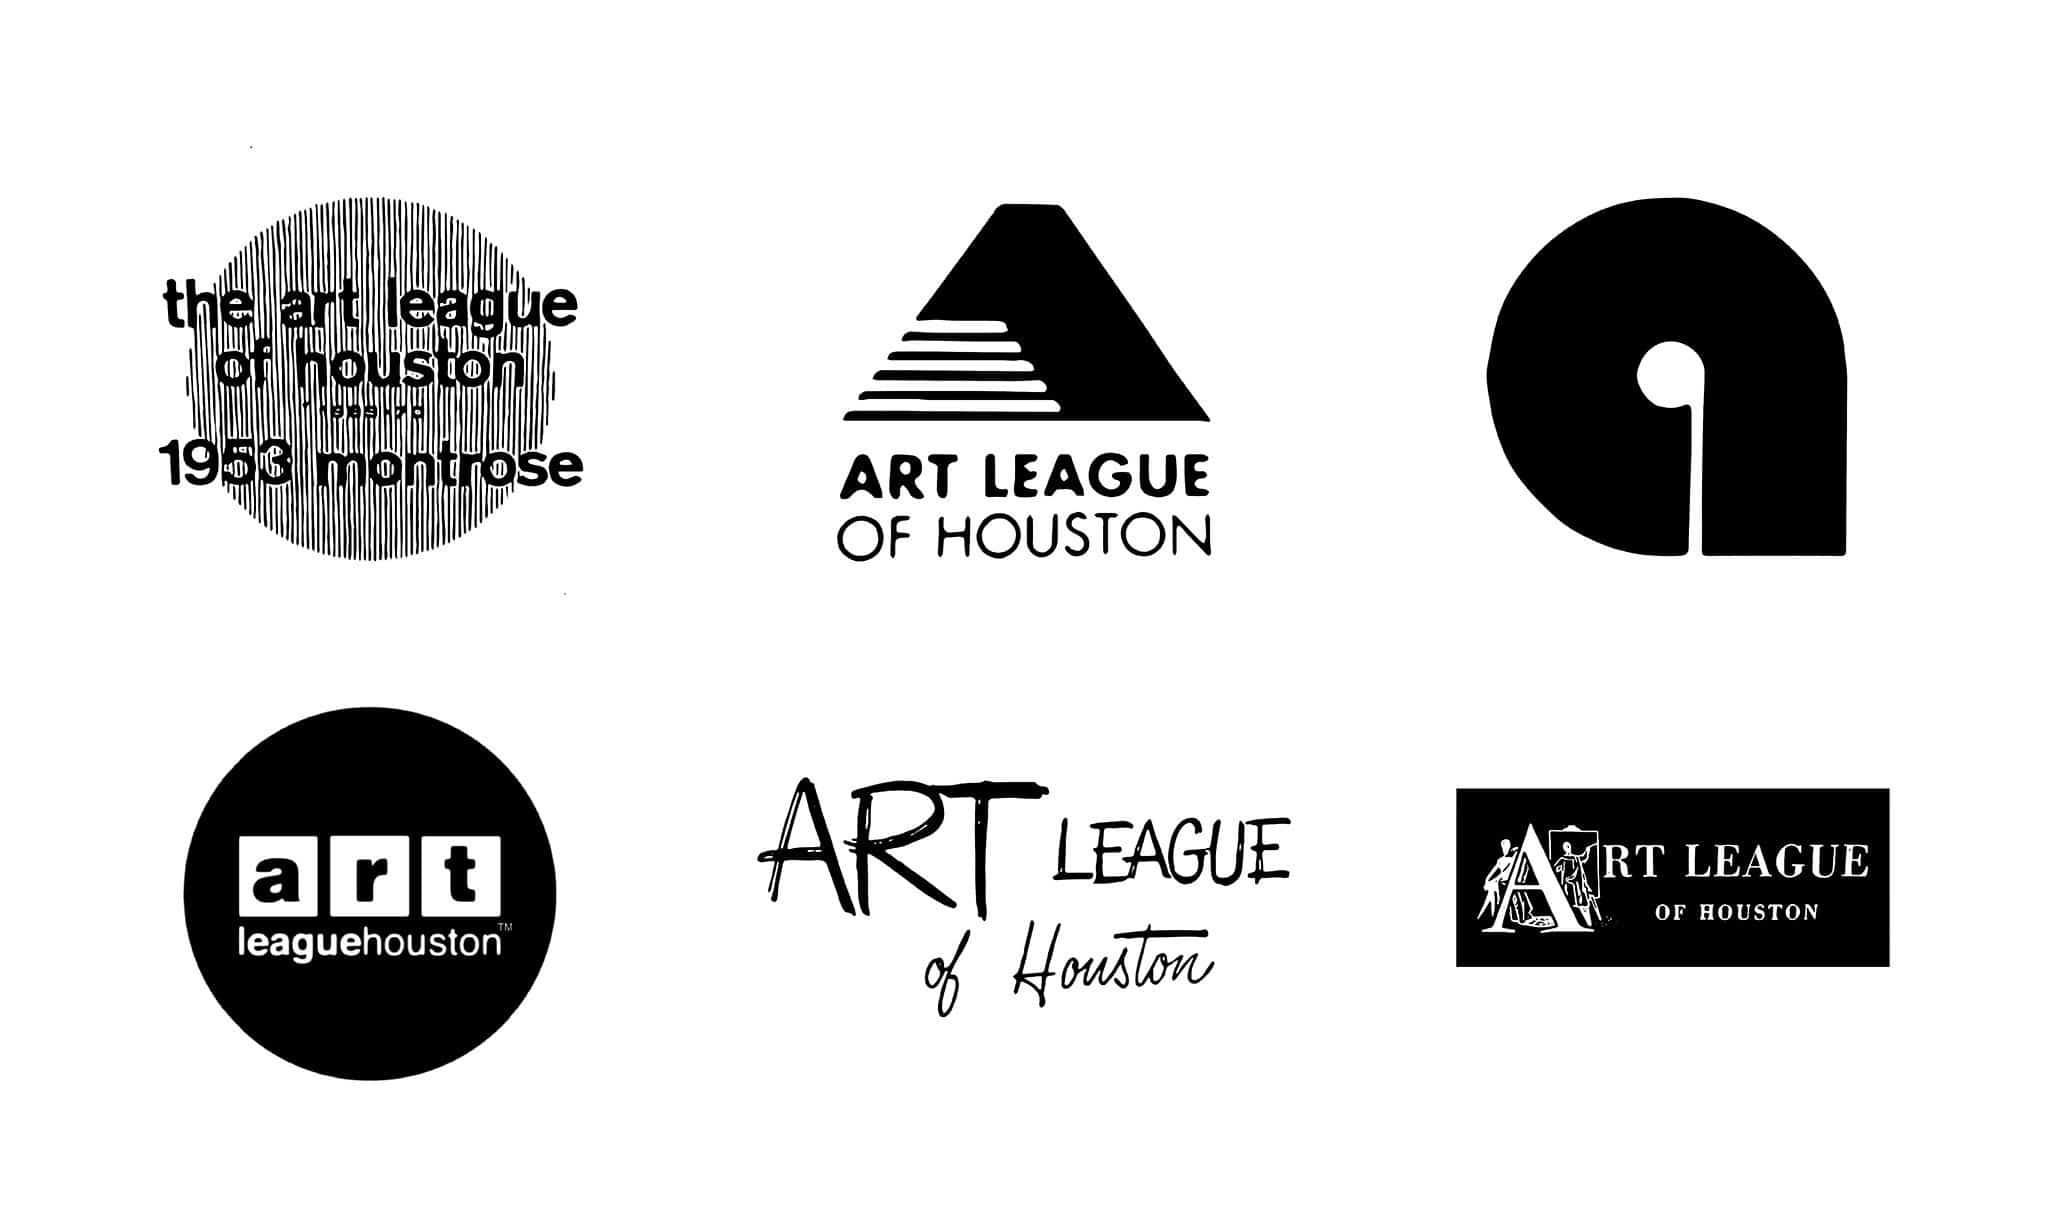 Previous logos, Art League Houston | Designed by Field of Study: A branding and graphic design consultancy | Houston TX | Jennifer Blanco & John Earles